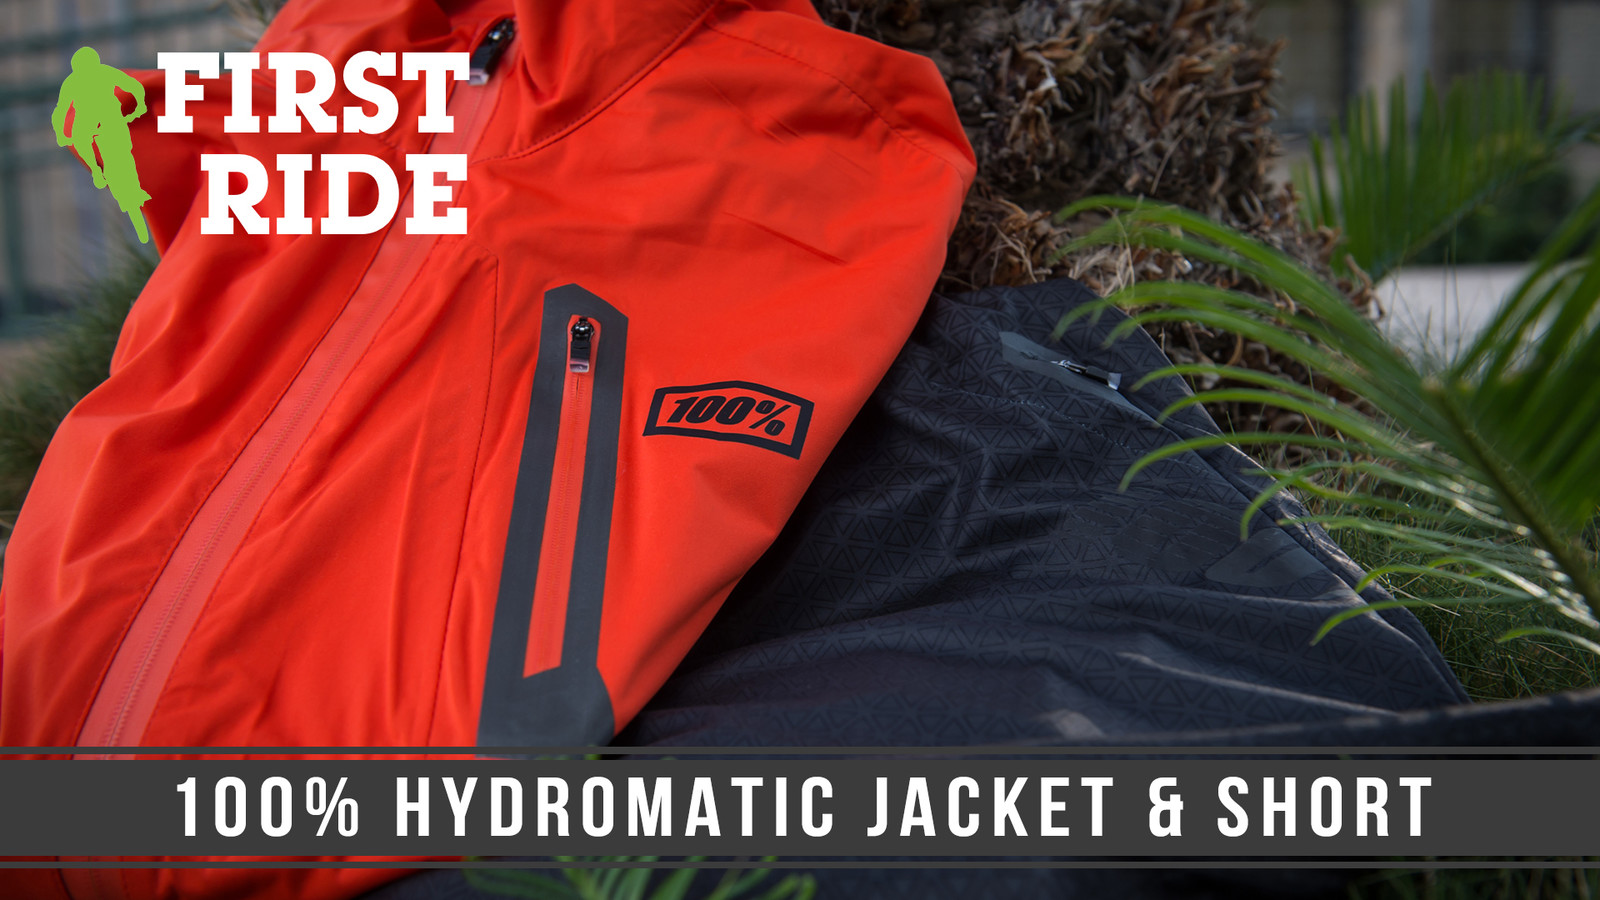 First Ride: 100% Hydromatic Jacket and Short